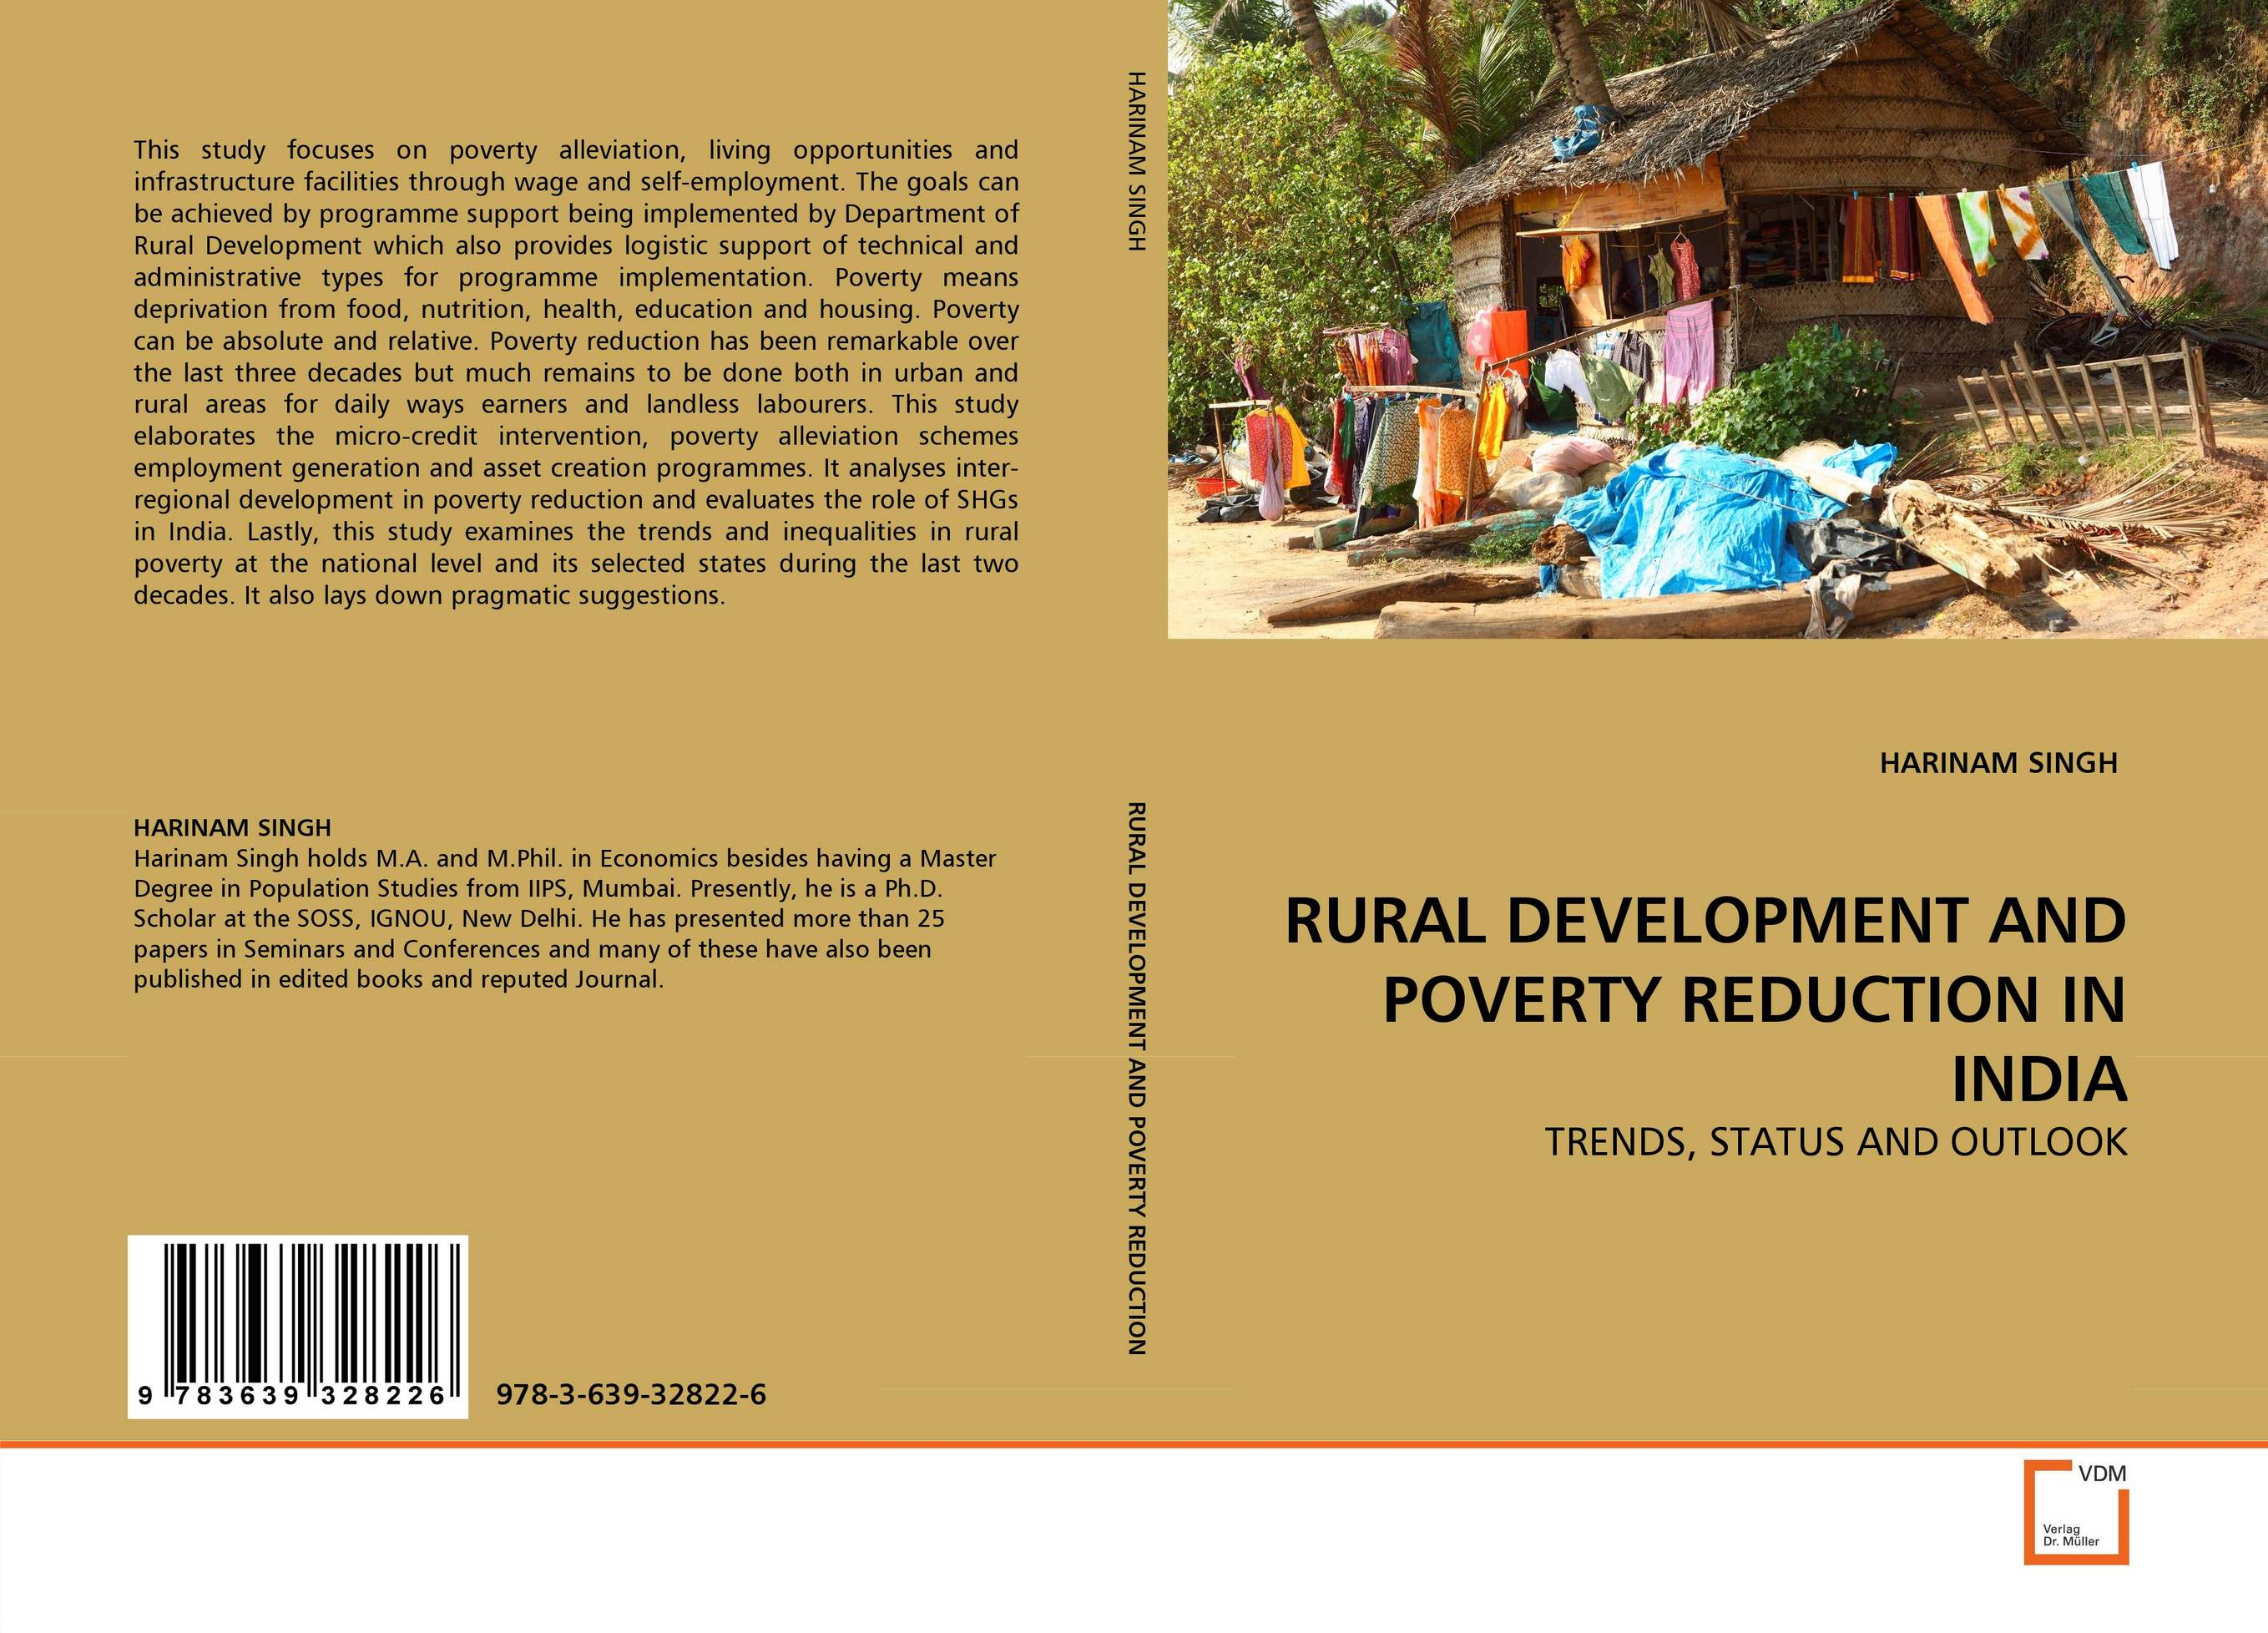 RURAL DEVELOPMENT AND POVERTY REDUCTION IN INDIA poverty and development in rural india